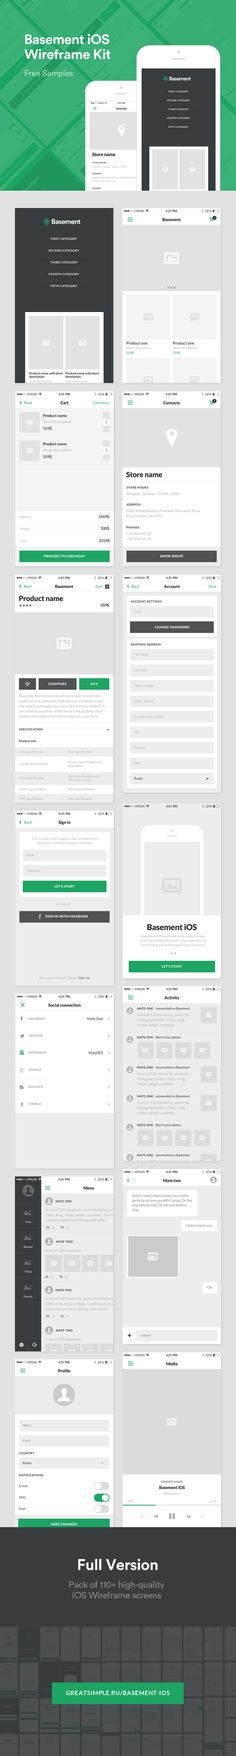 Let prototype and design your next iOS app or mobile website in a quick and effortless way with this well crafted UI wireframe kit. The Kit contains an assortment of eCommerce, and social media screens available for both Photoshop and Sketch. Layout Design, Interaktives Design, Tool Design, Ios App Design, Mobile App Design, Interface Design, Mobile Ui, Interaction Design, Prototype App